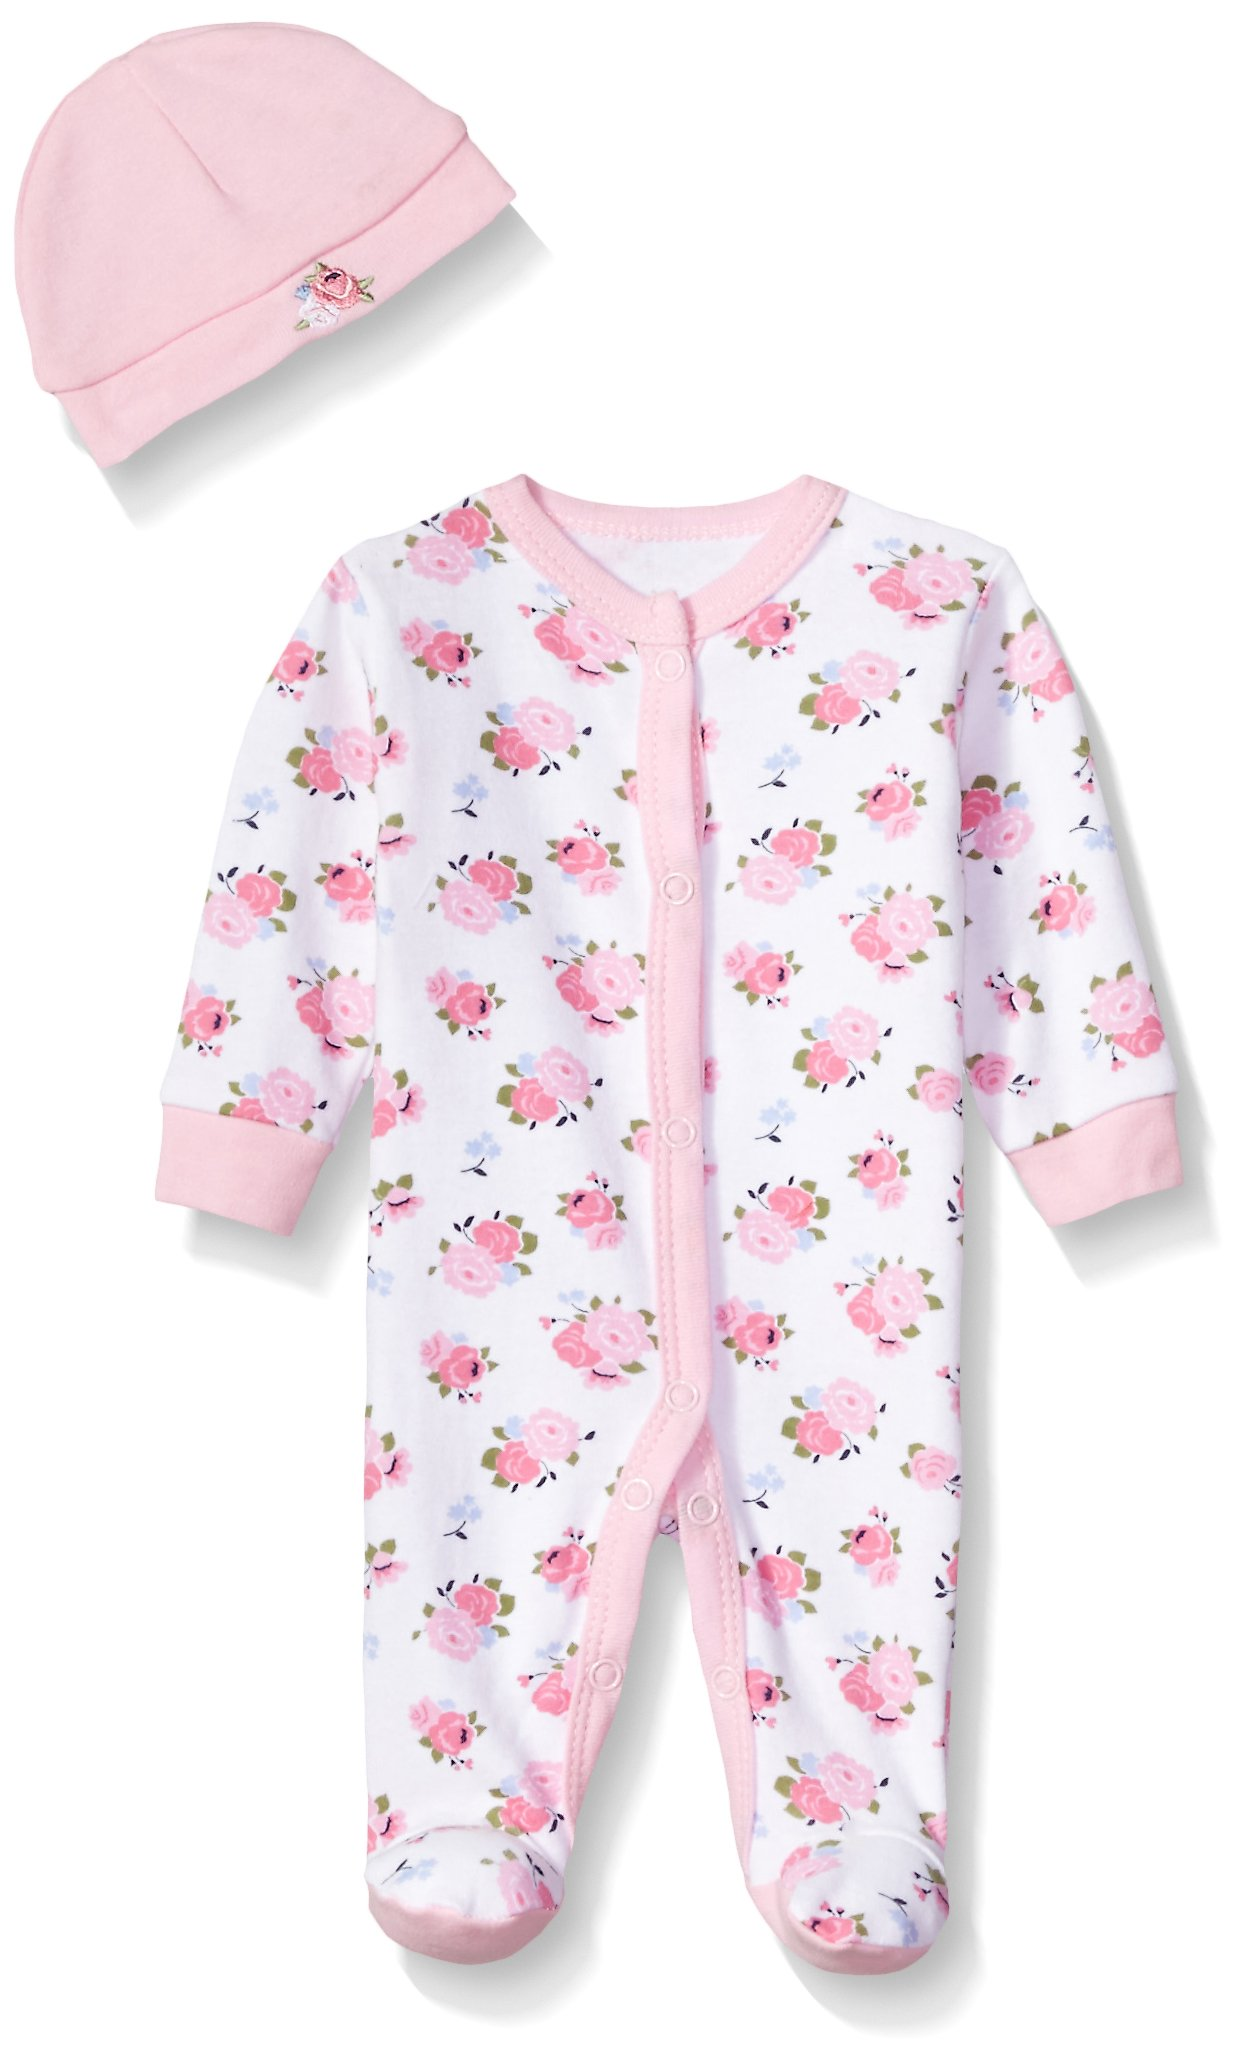 Amazon.com : Premature Early Baby Clothes Pack of 2 ...